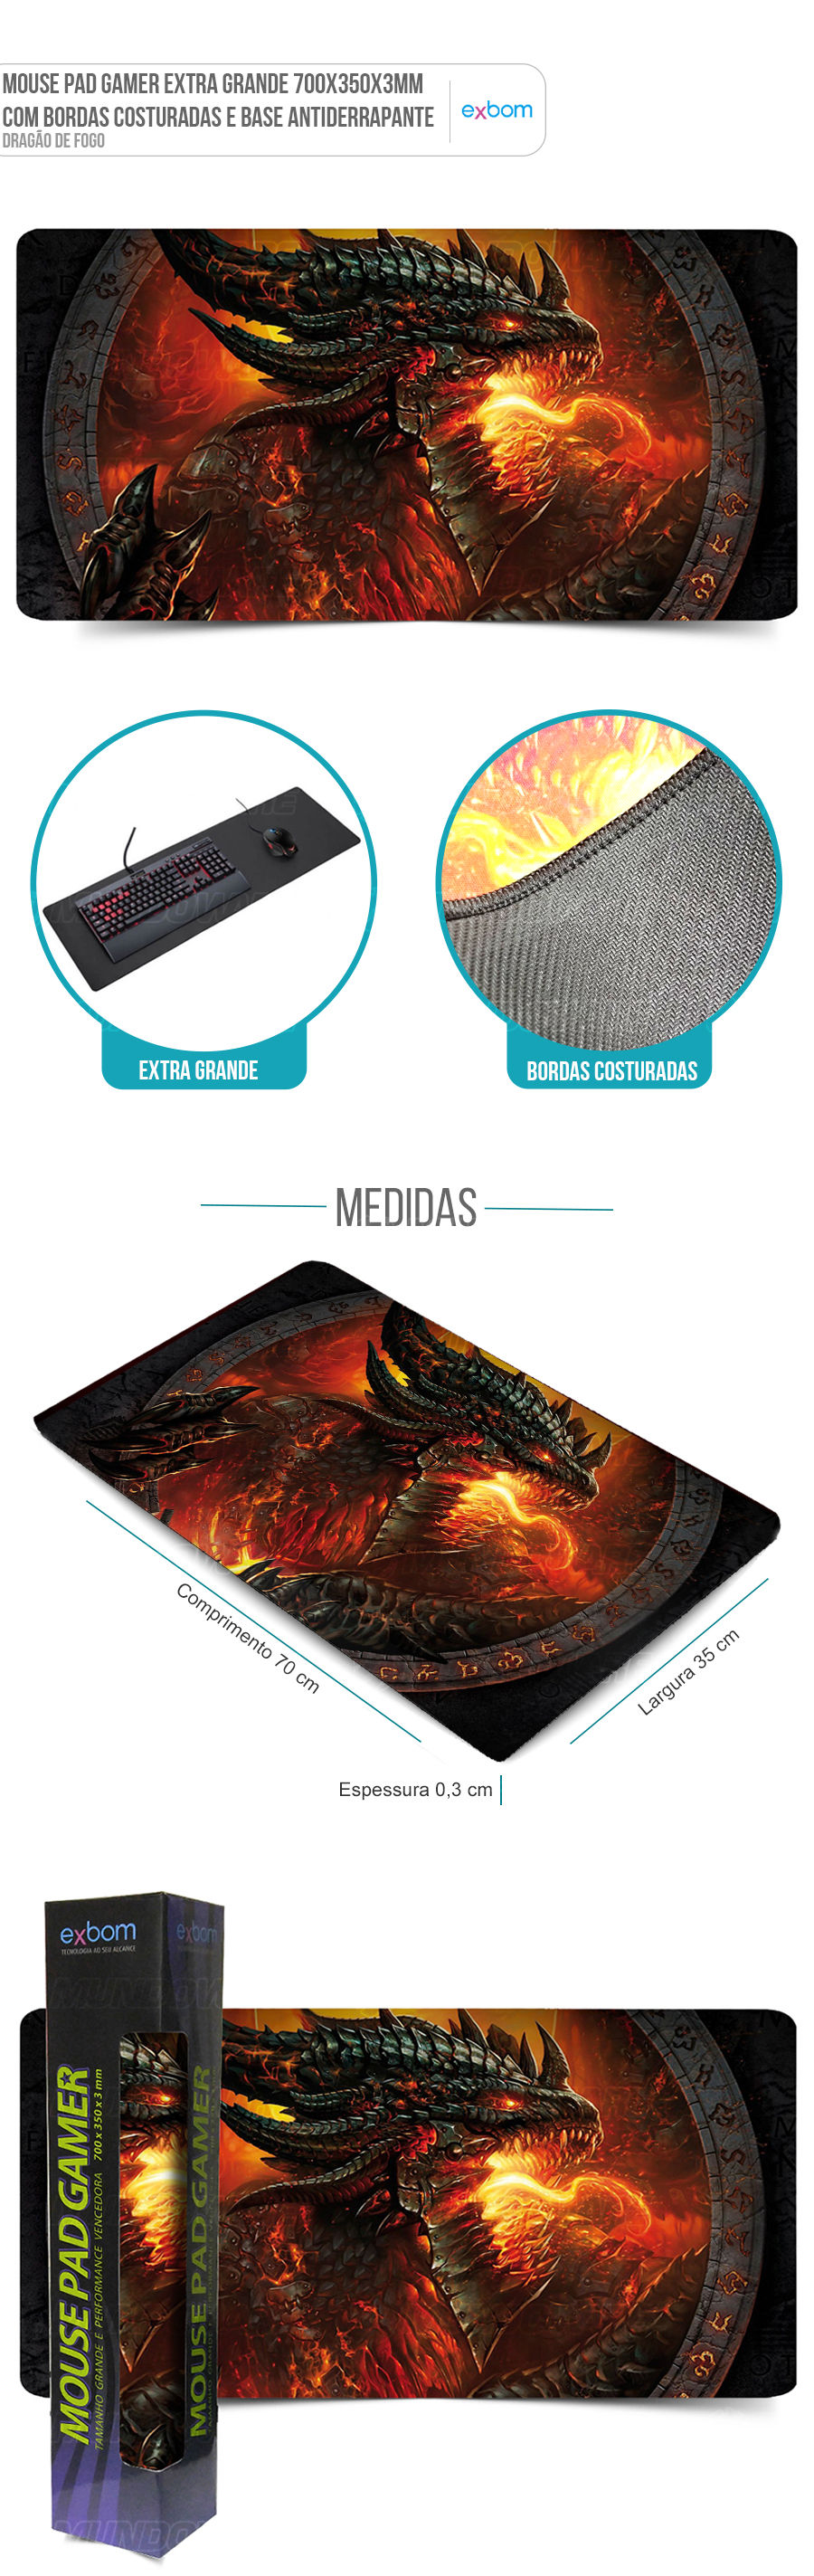 Mouse Pad Gaming Extra Grande Large Gamer Dragão de Fogo